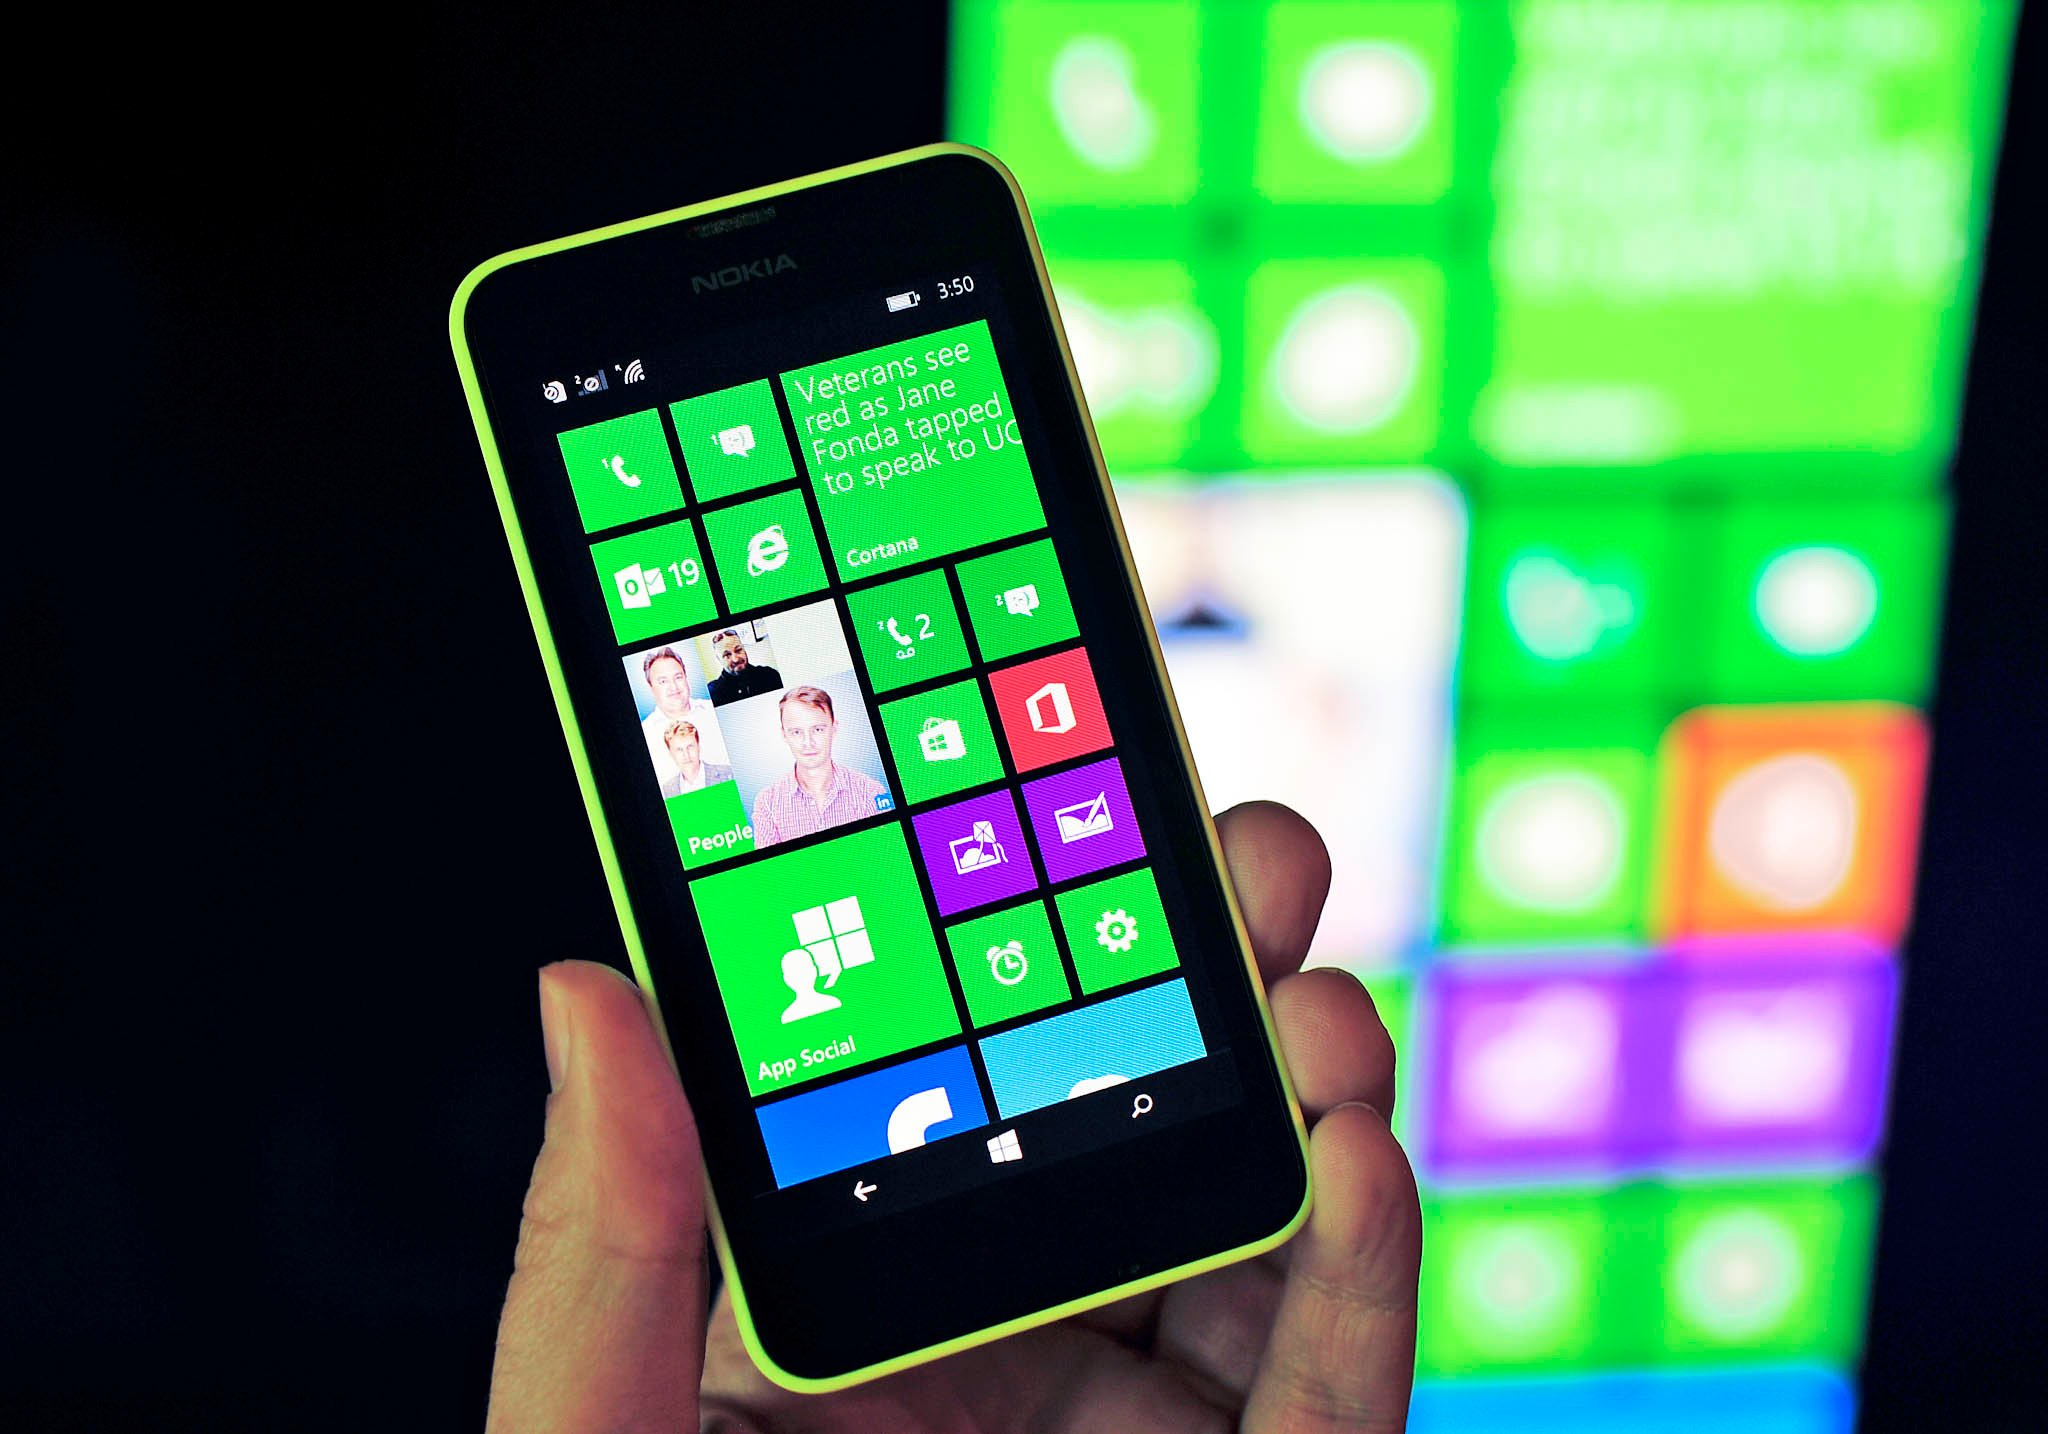 http://windowsphonedaily.com/2014/08/microsoft-is-prepping-a-miracast-dongle-to-project-your-windows-phone-content-to-a-tv.html#.U_ZvVVWwJCN